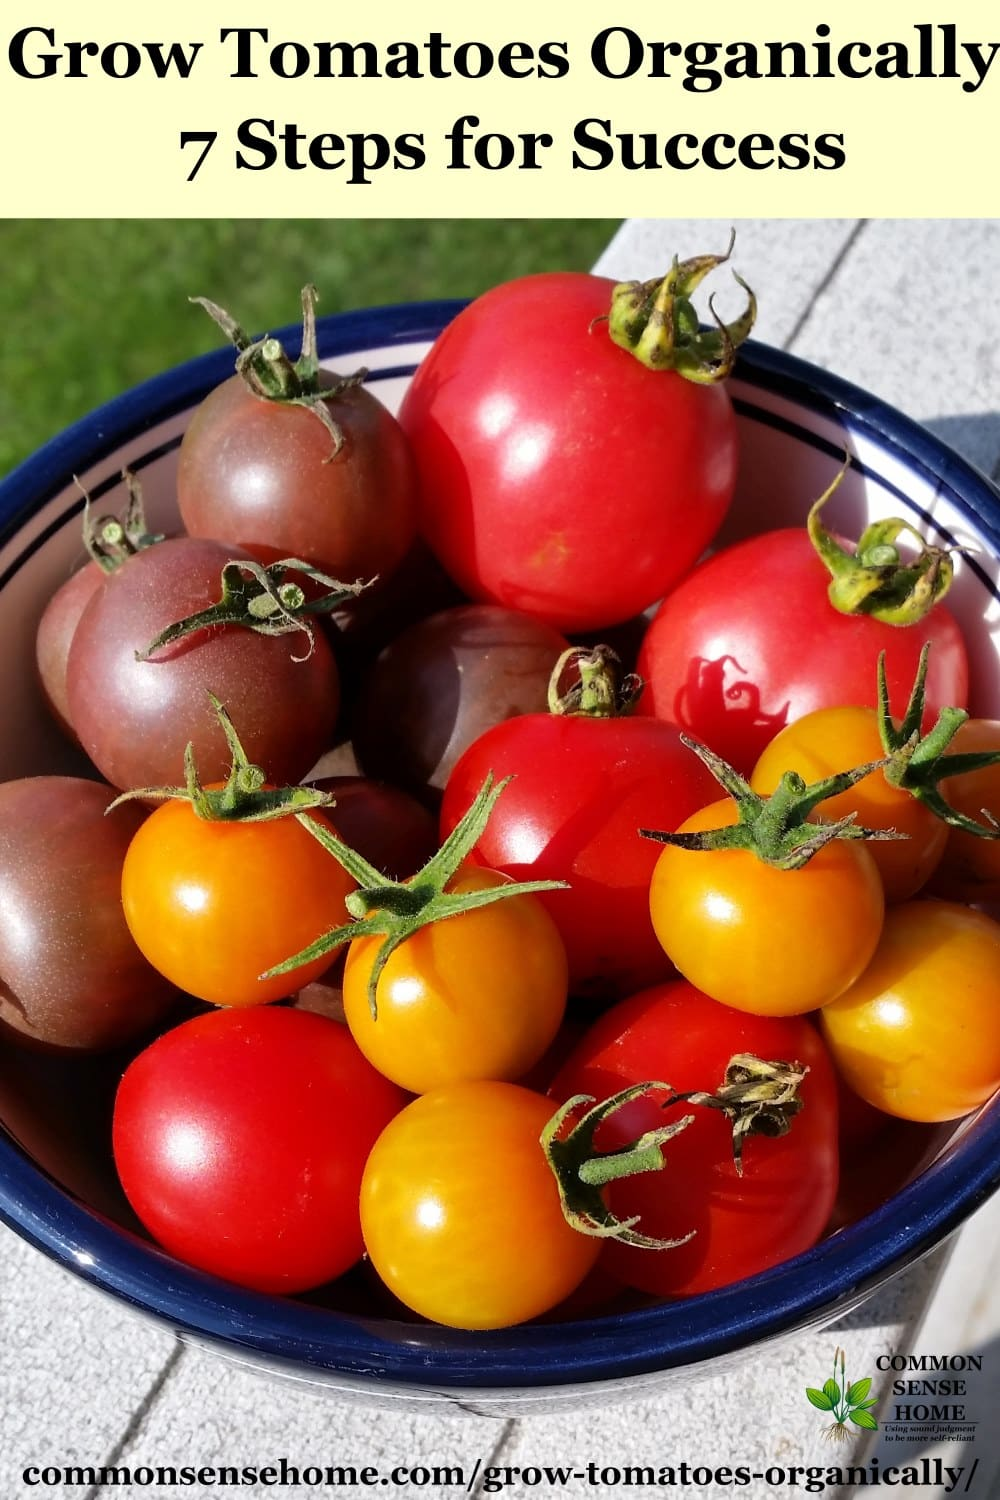 How to Grow Tomatoes Organically - 7 Steps for Success